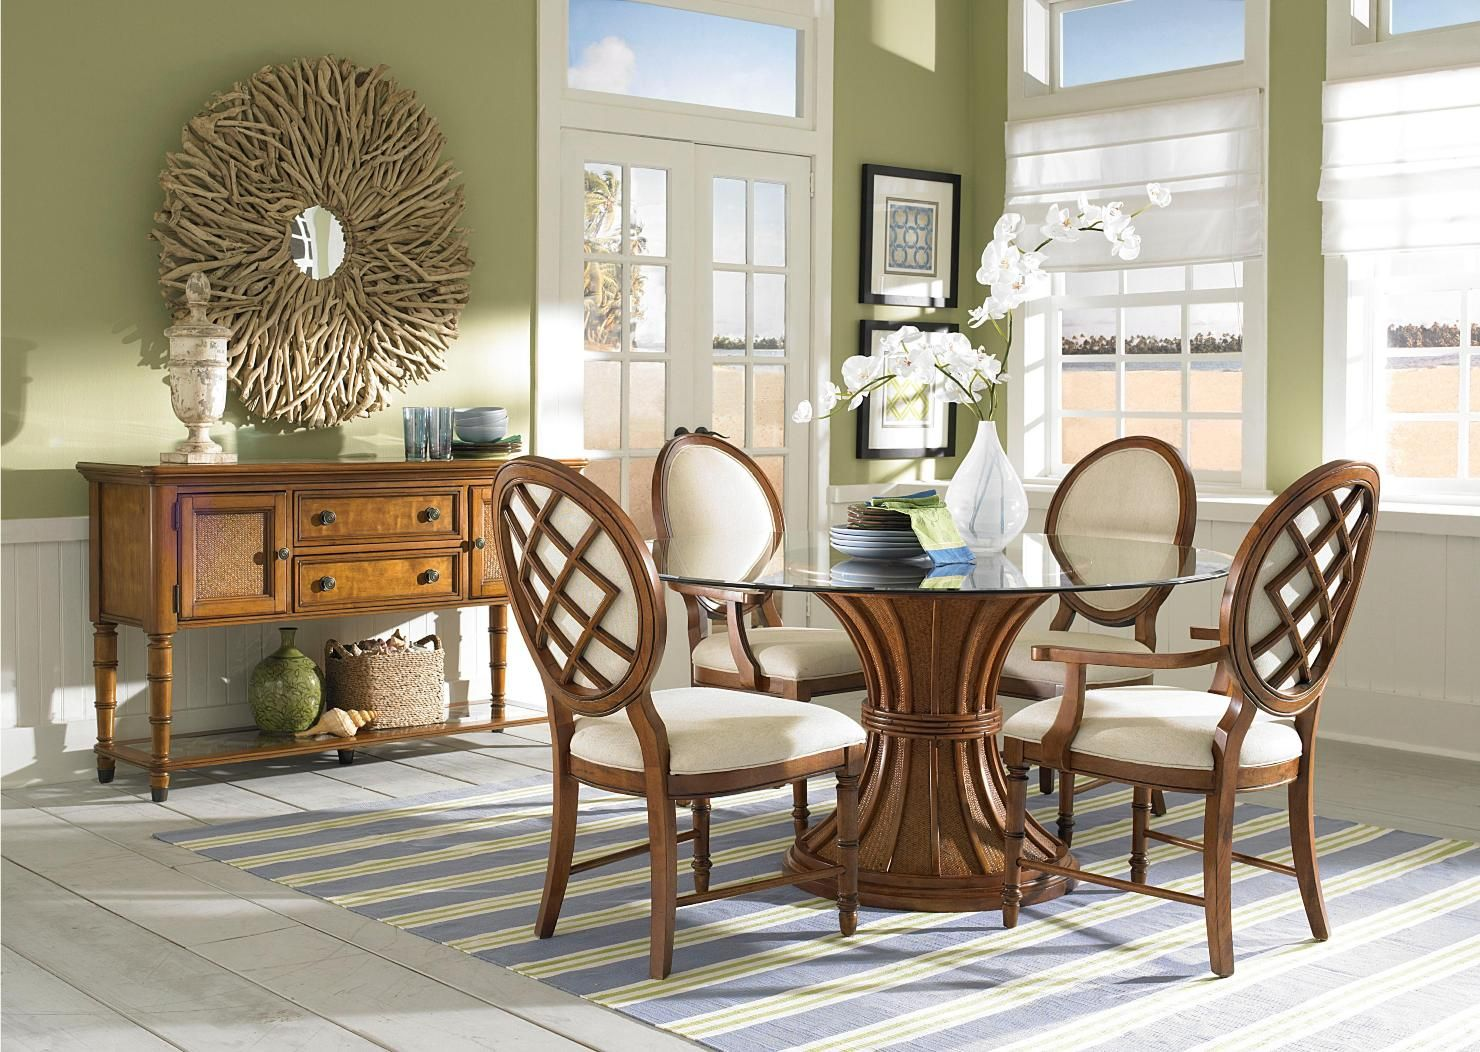 2019 Best Dining Room Chairs With Elegance And Practicality